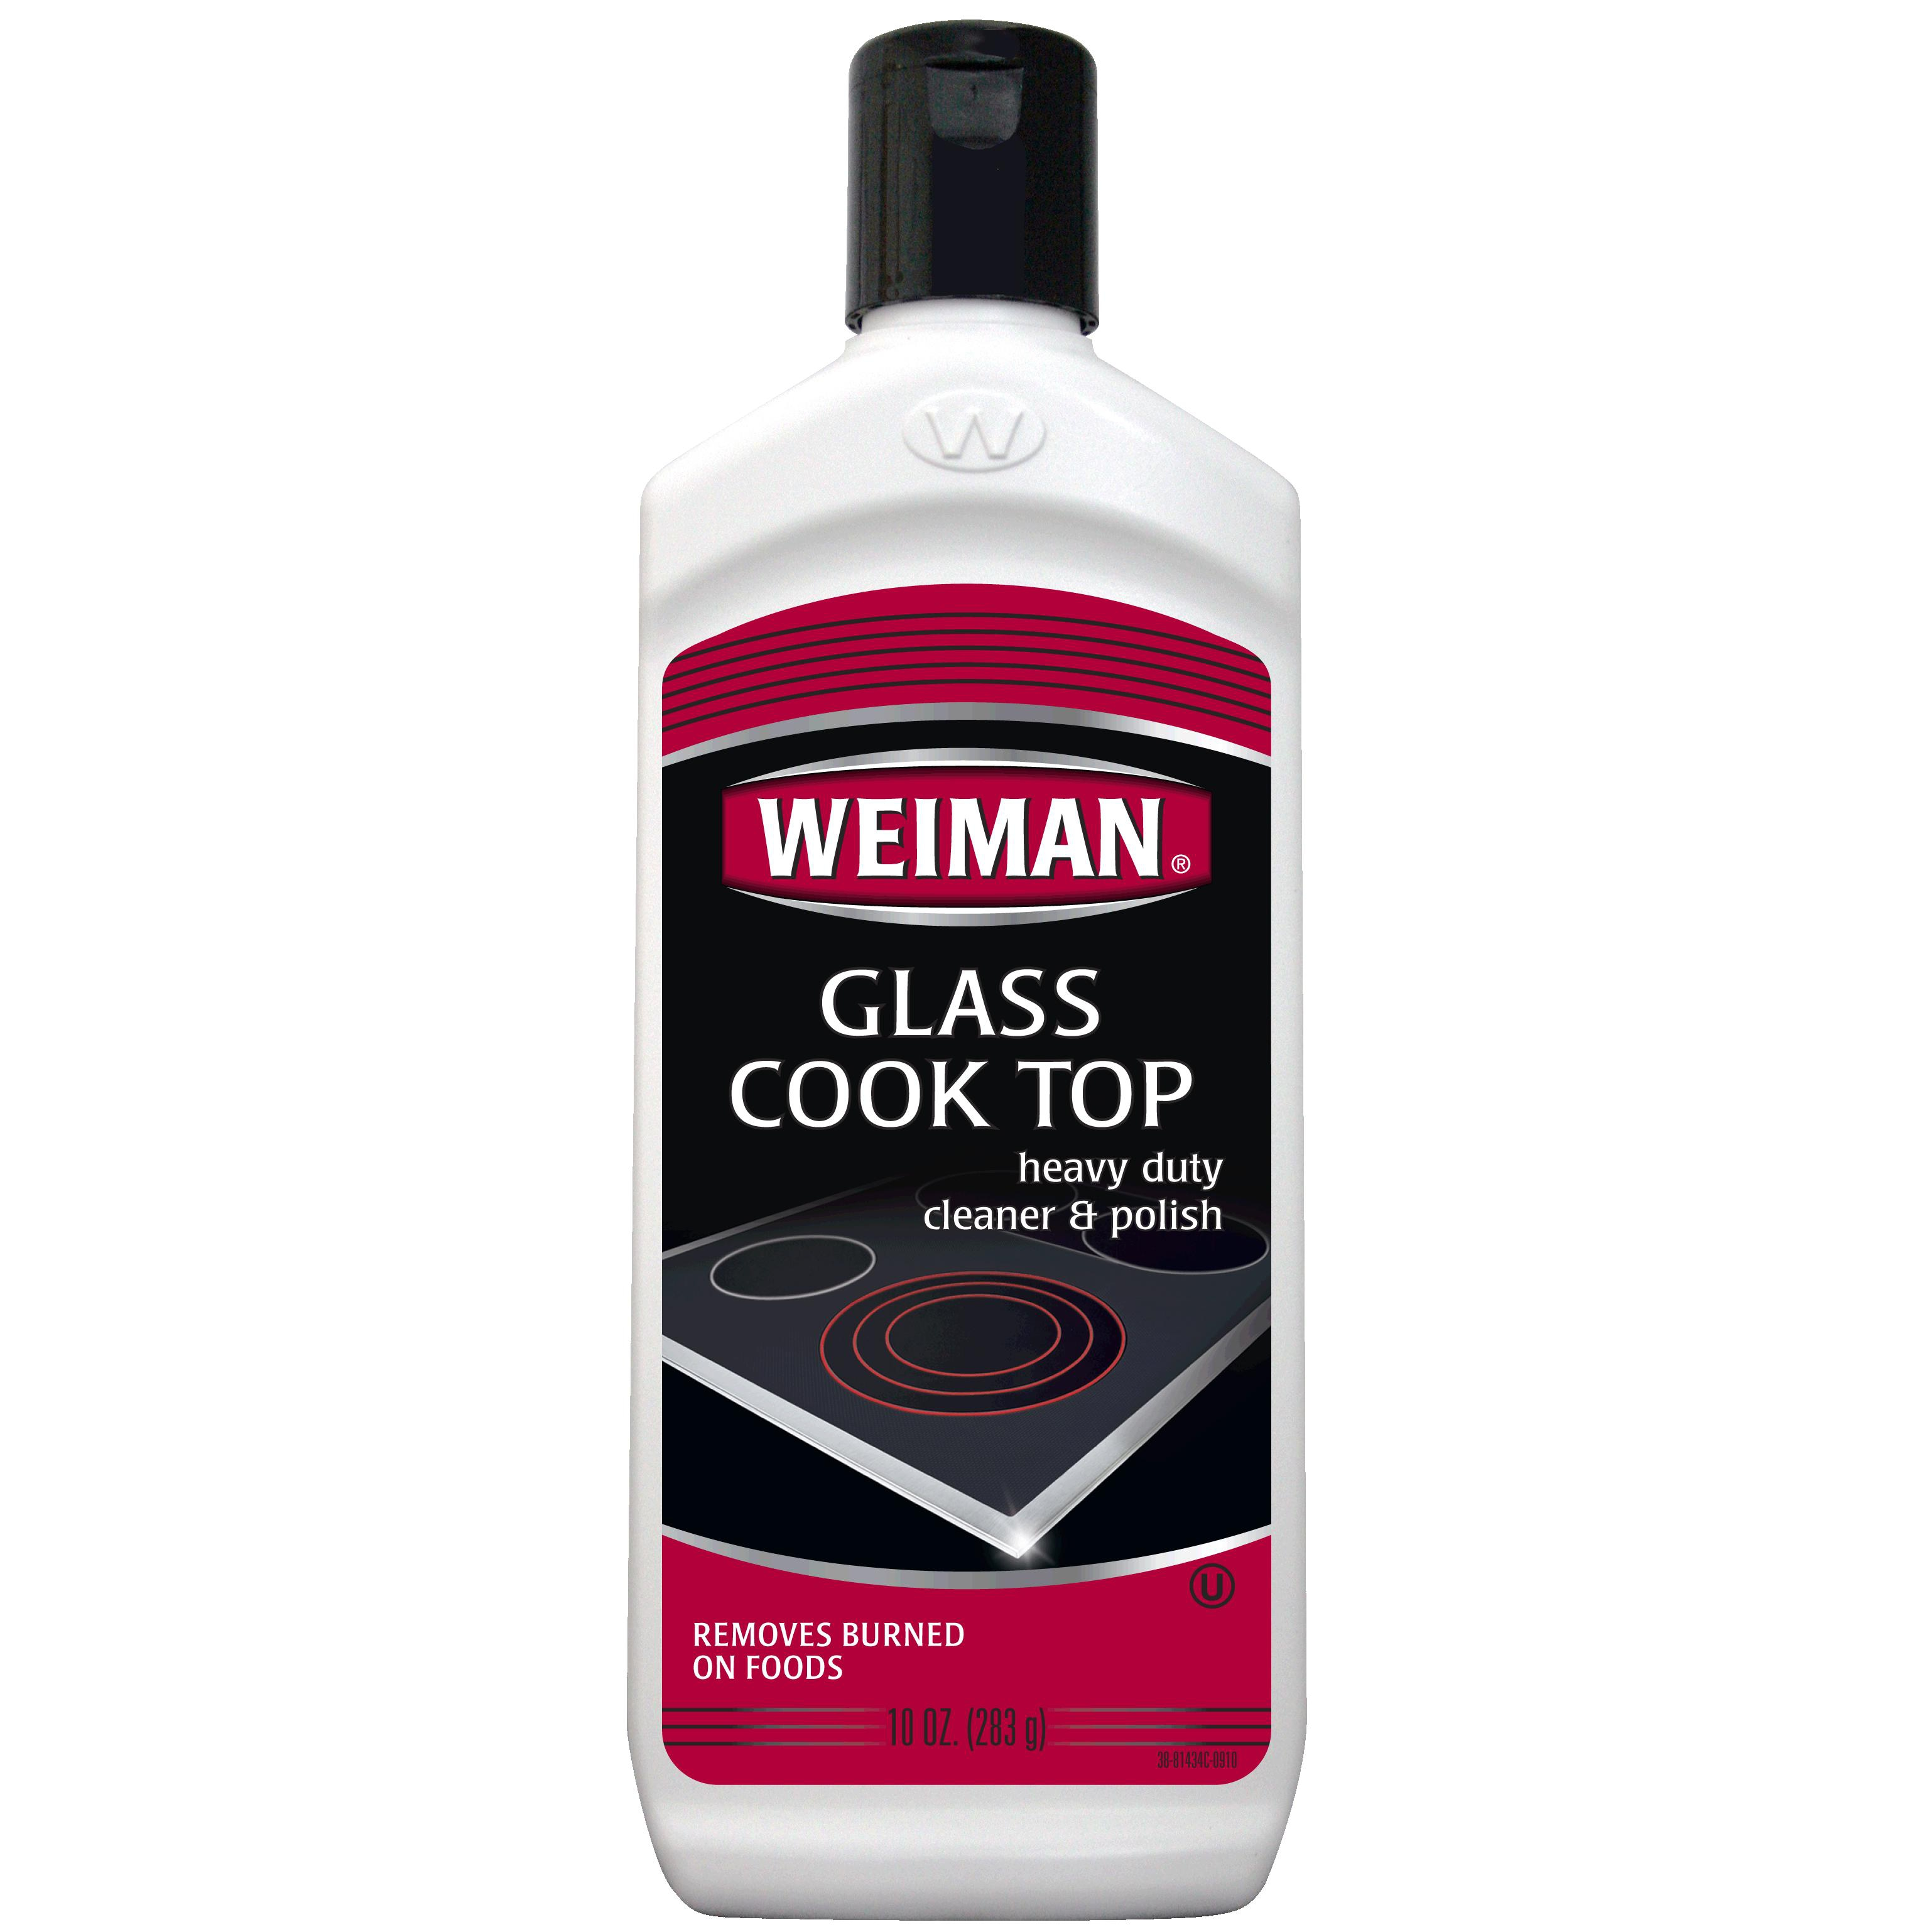 Weiman Heavy Duty Glass Cook Top Cleaner and Polish, 10 Ounce